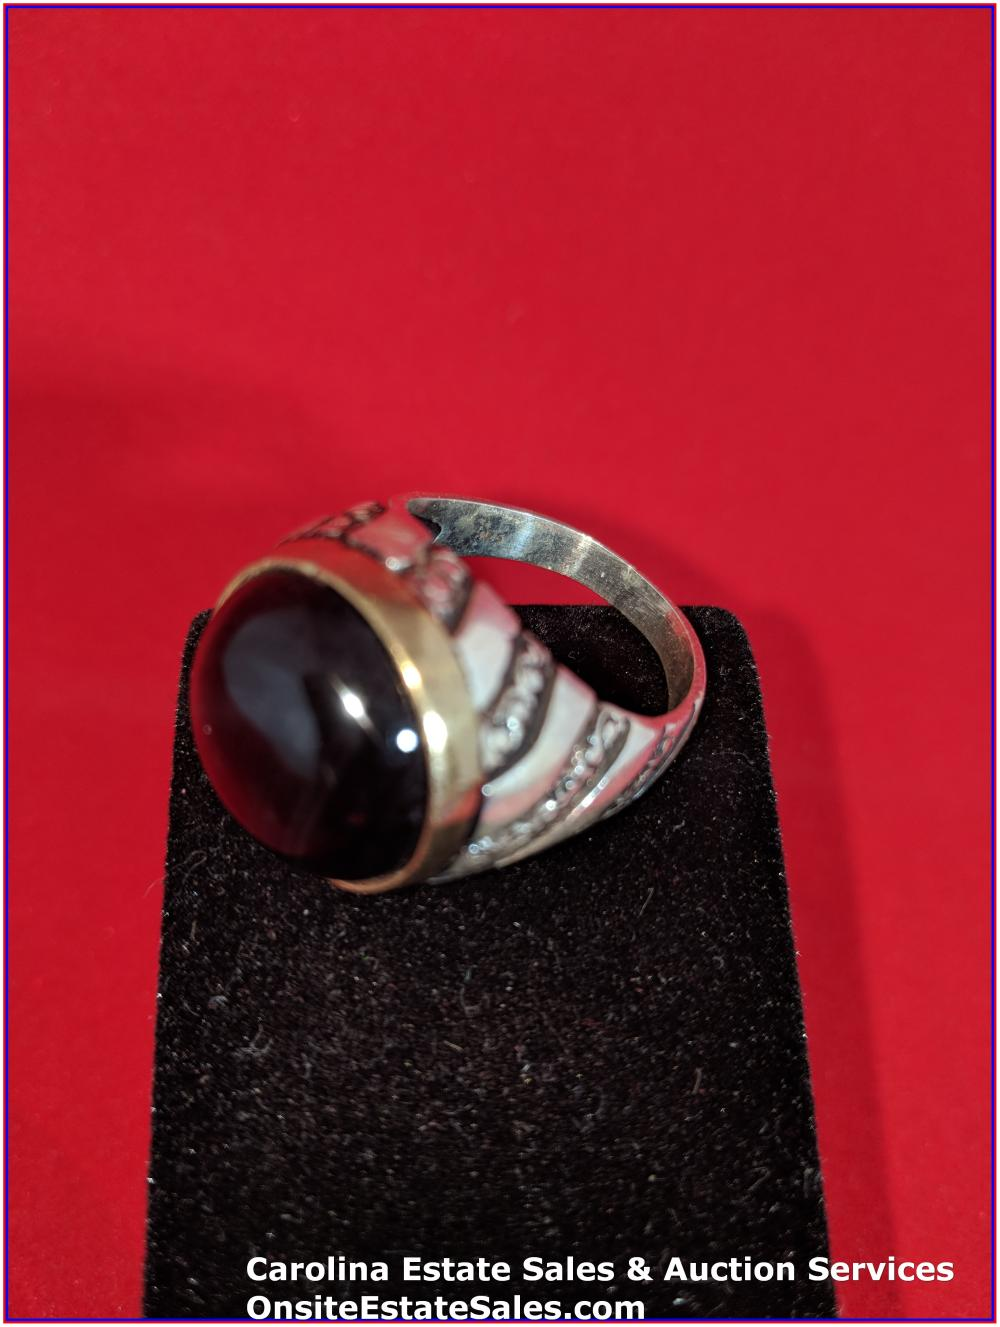 925 Gem Ring Sterling 16 Grams Total Weight Includes Stone